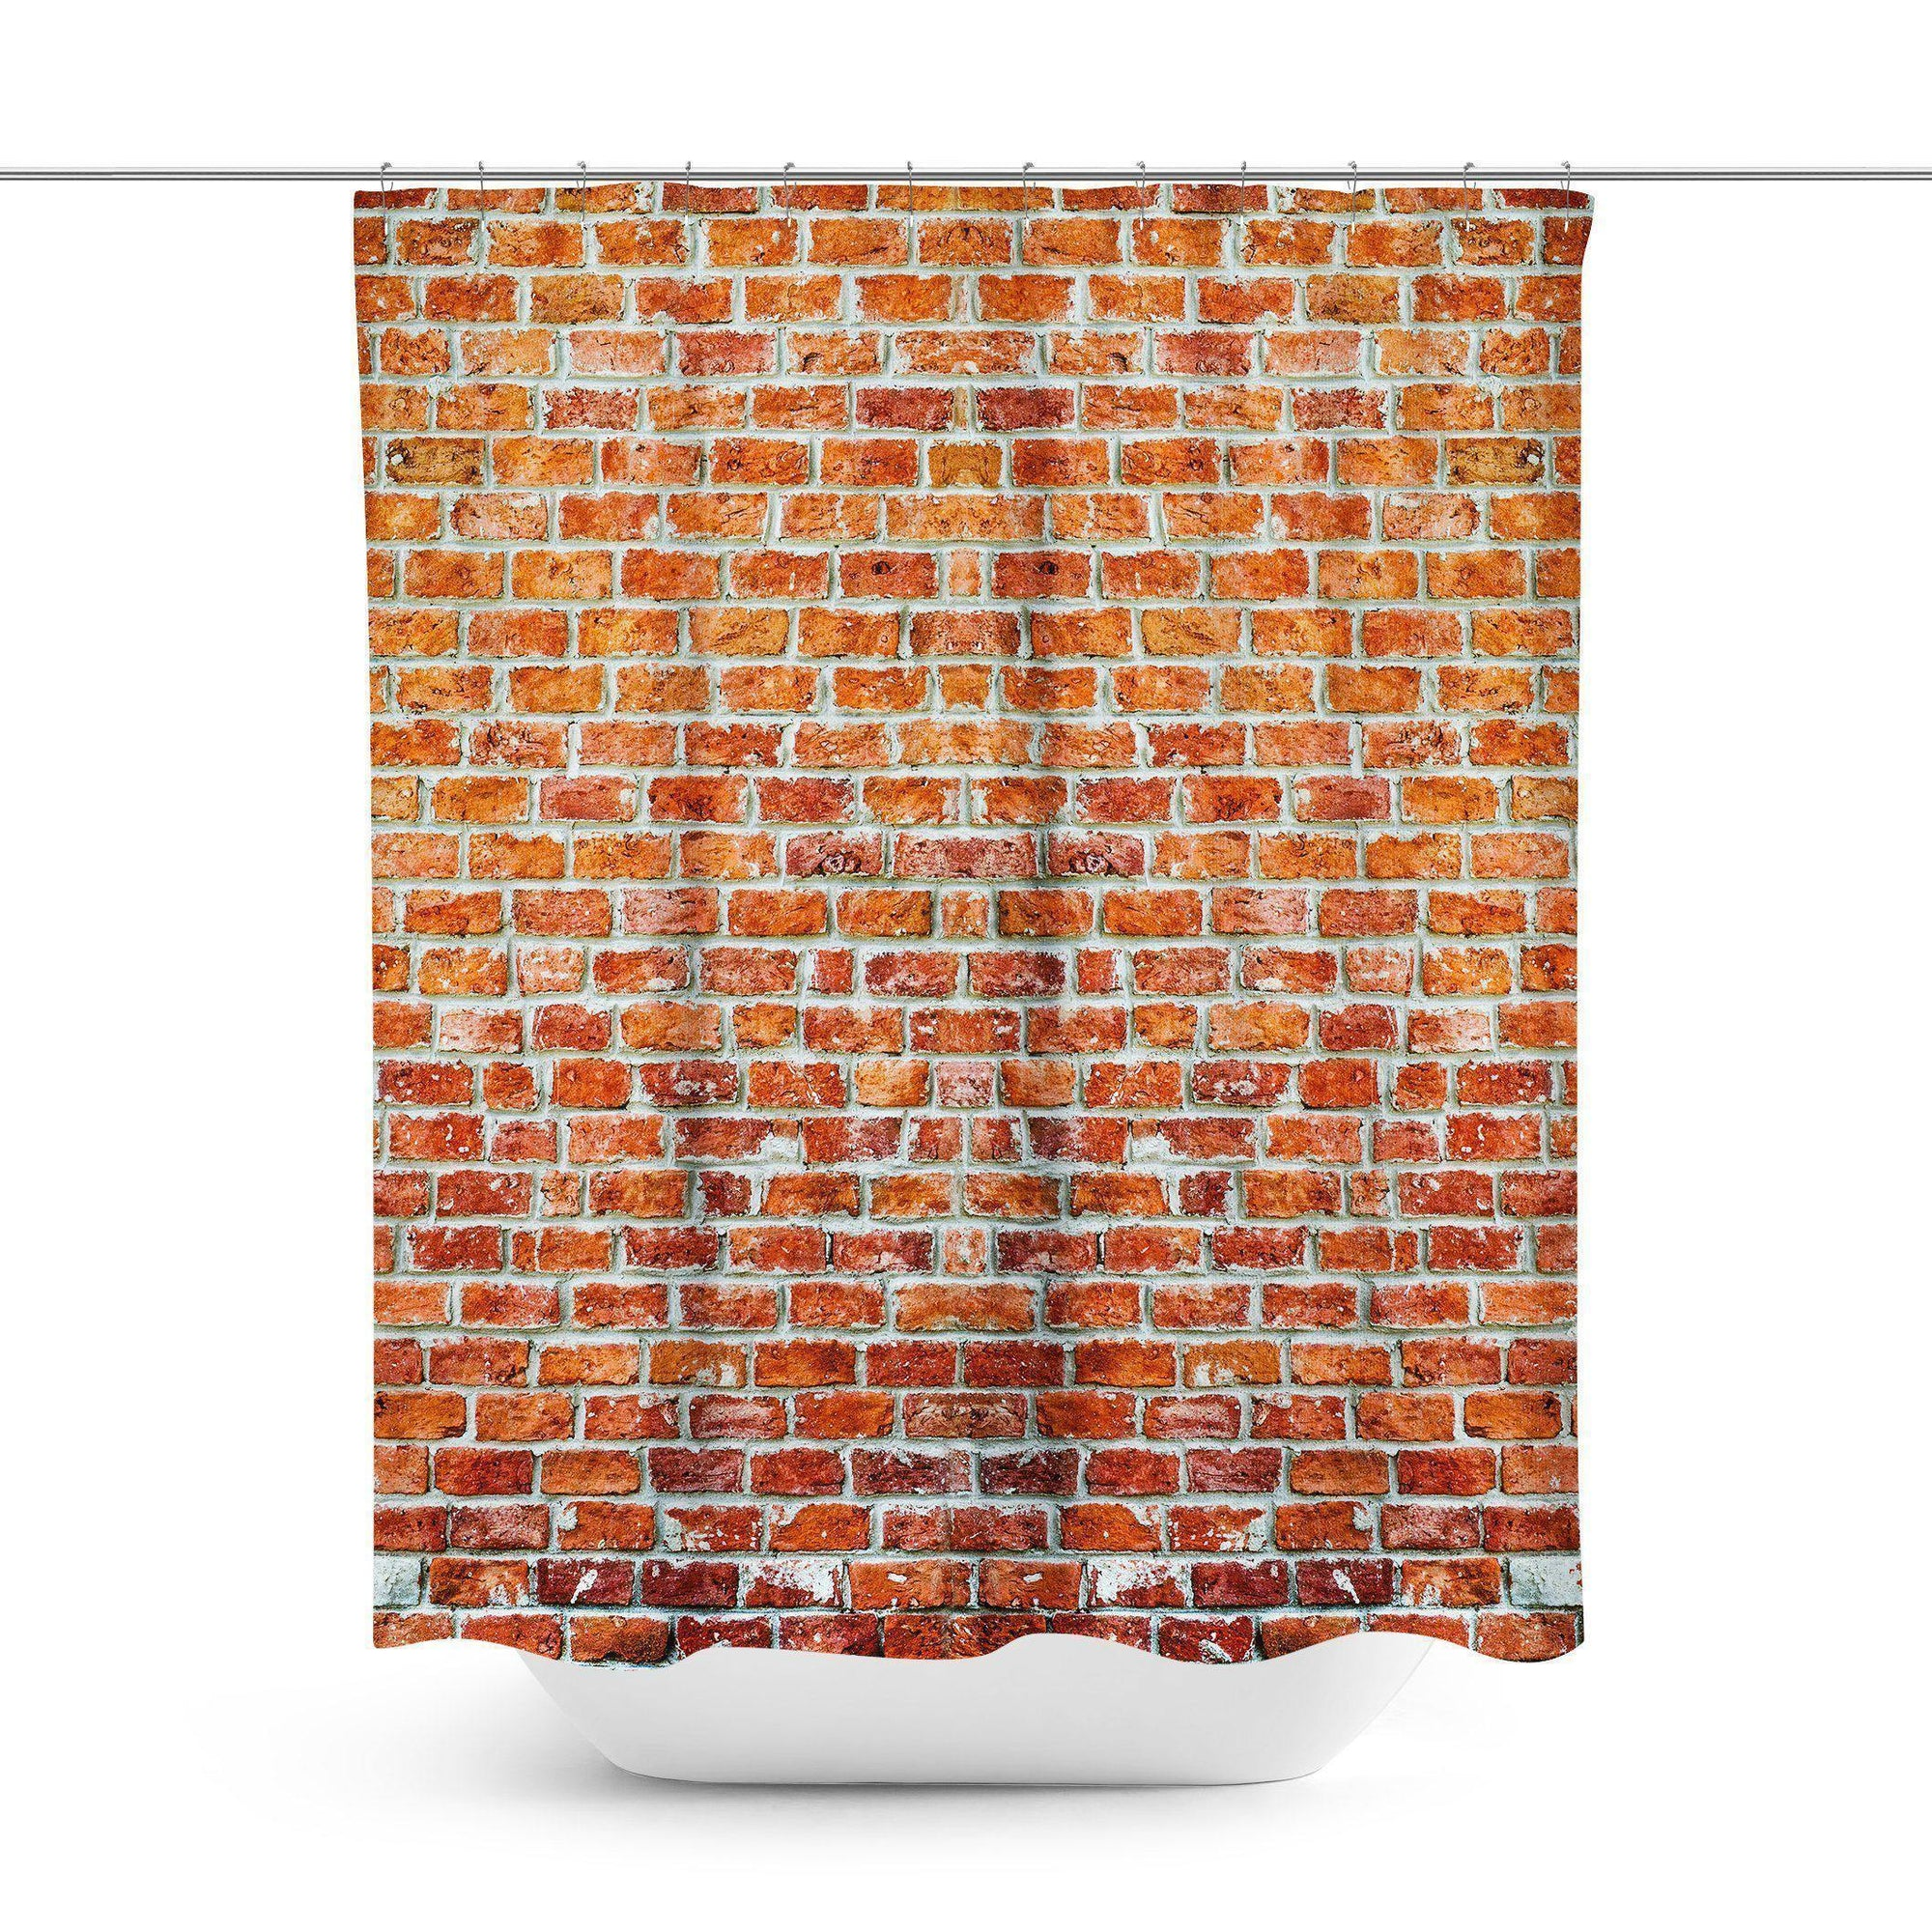 Brick Wall Shower Curtain - Shower Curtains - W.FRANCIS